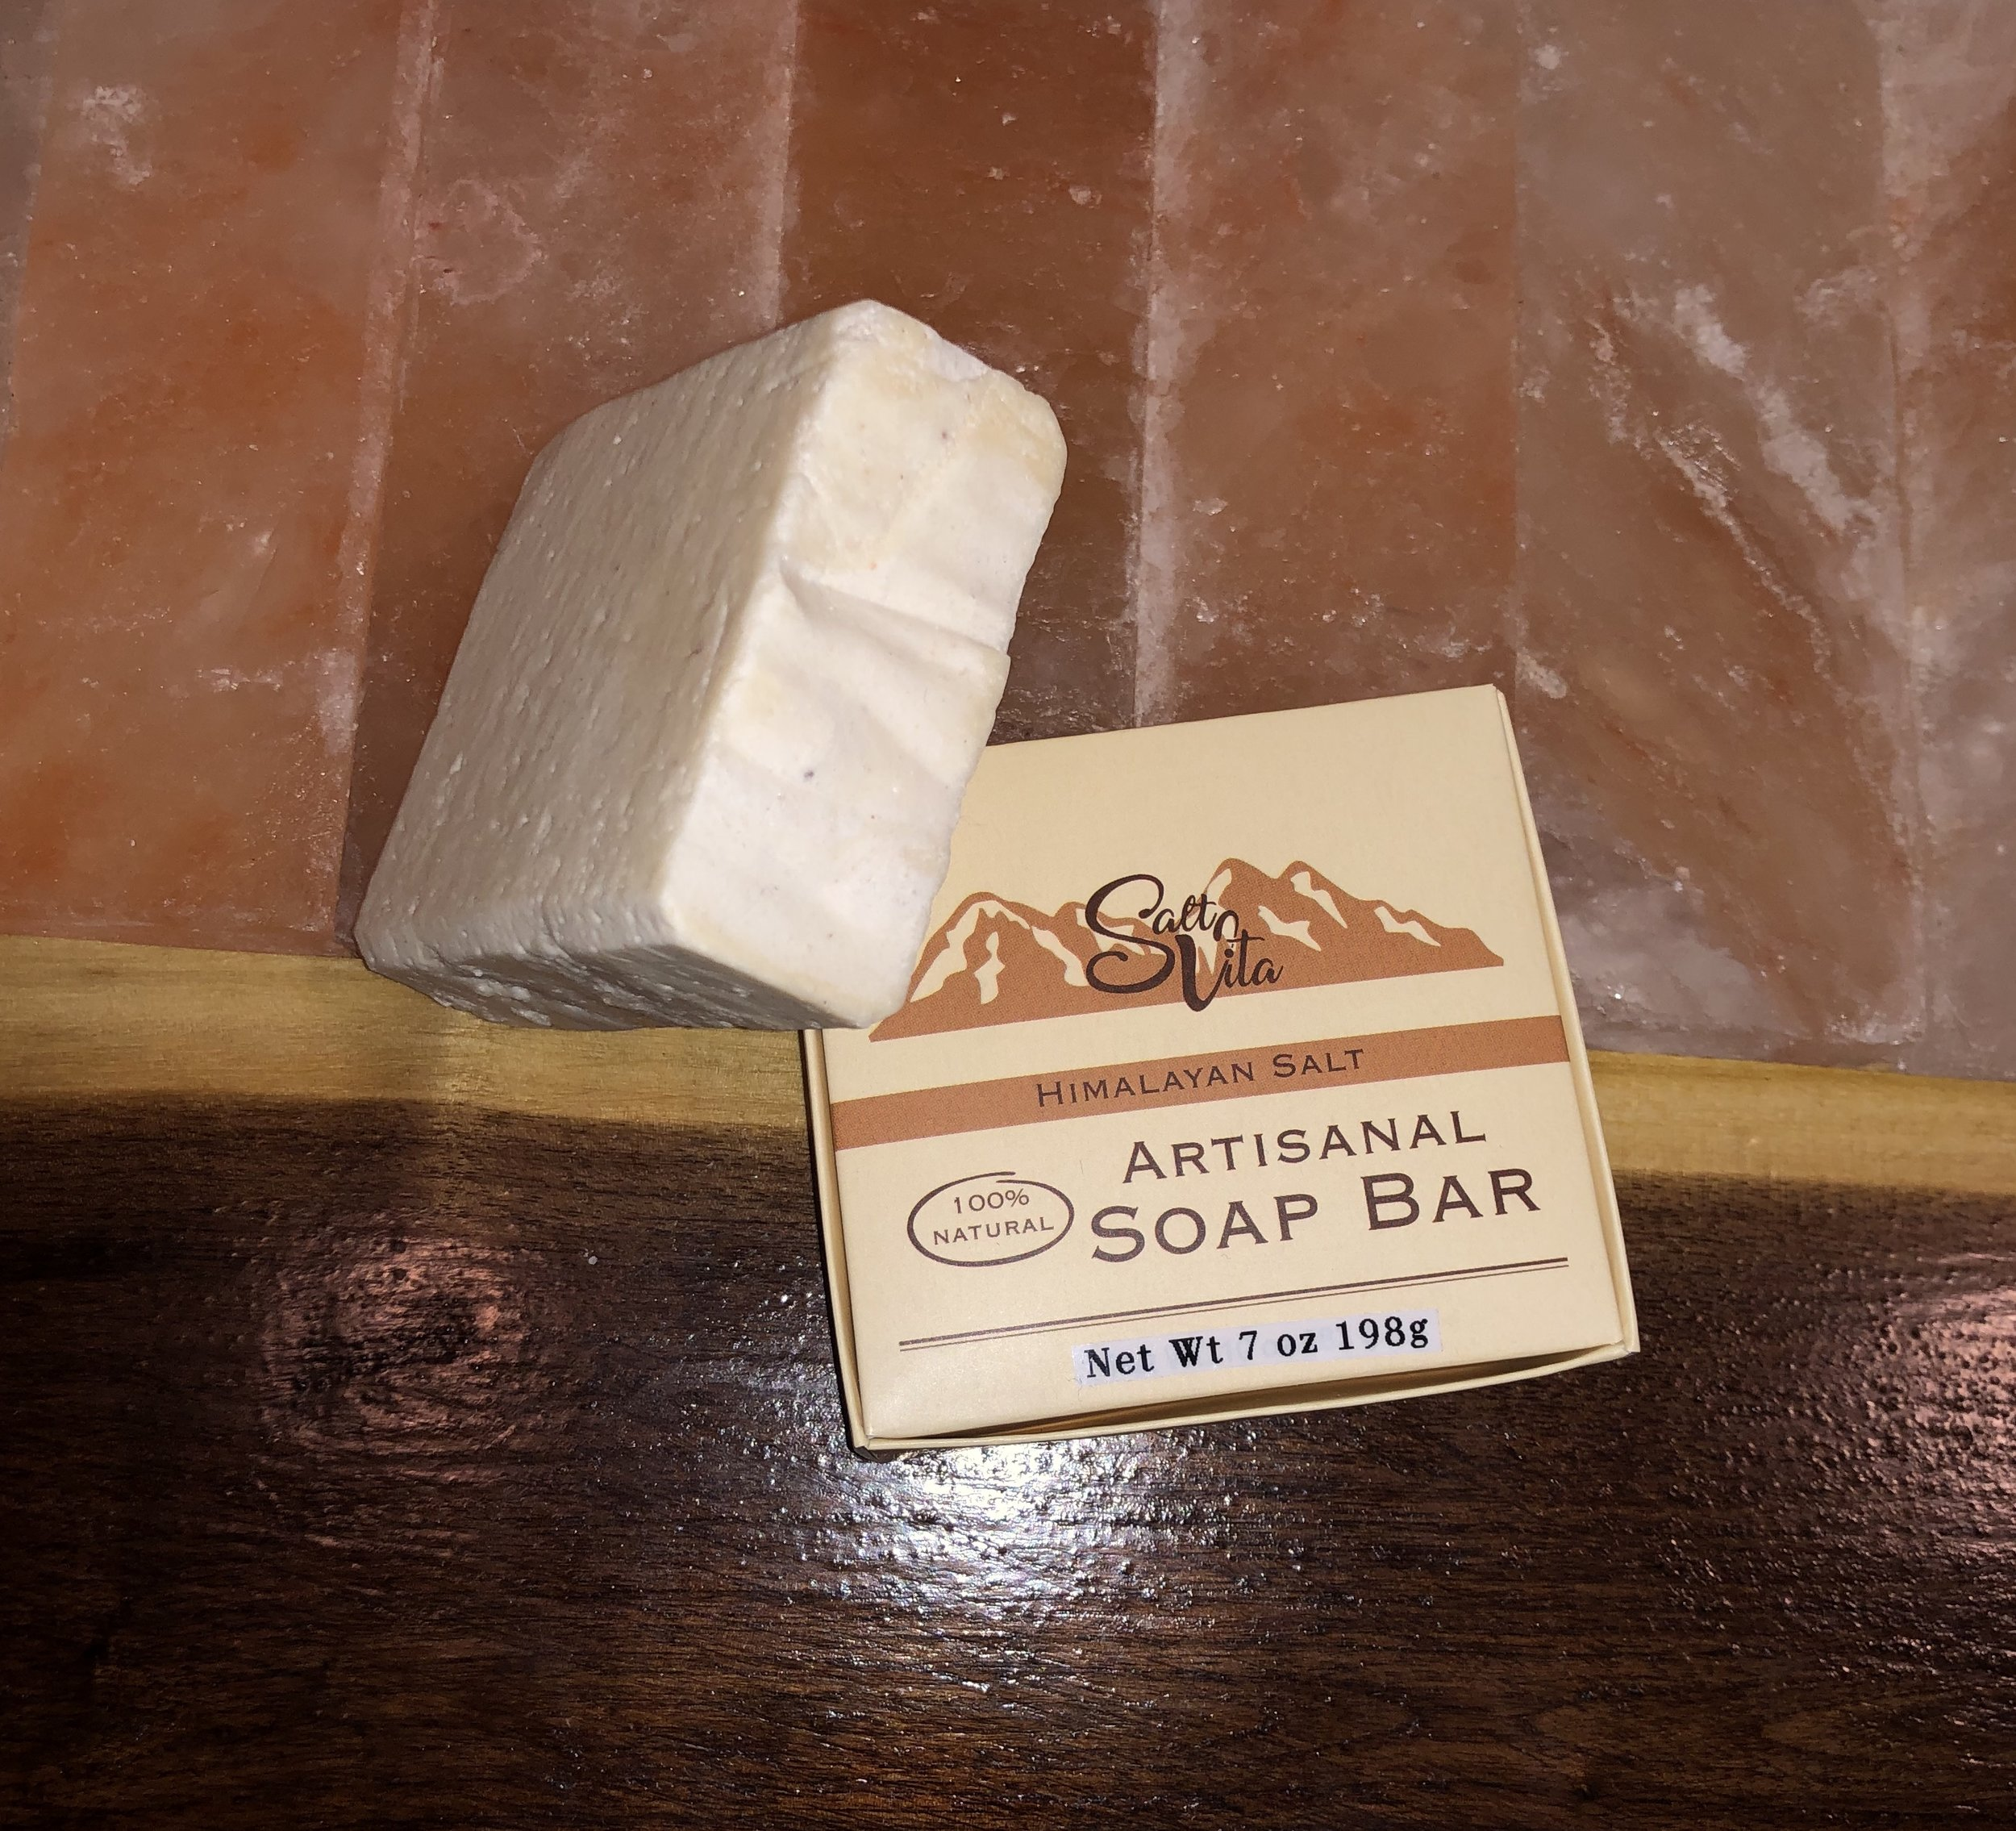 Salt Vita's natural artisan Himalayan soap bars are handcrafted in small batches using only the most nourishing and moisturizing organic and natural ingredients, and the perfect blend of 100% pure aromatherapy essential oils. Vegan friendly.